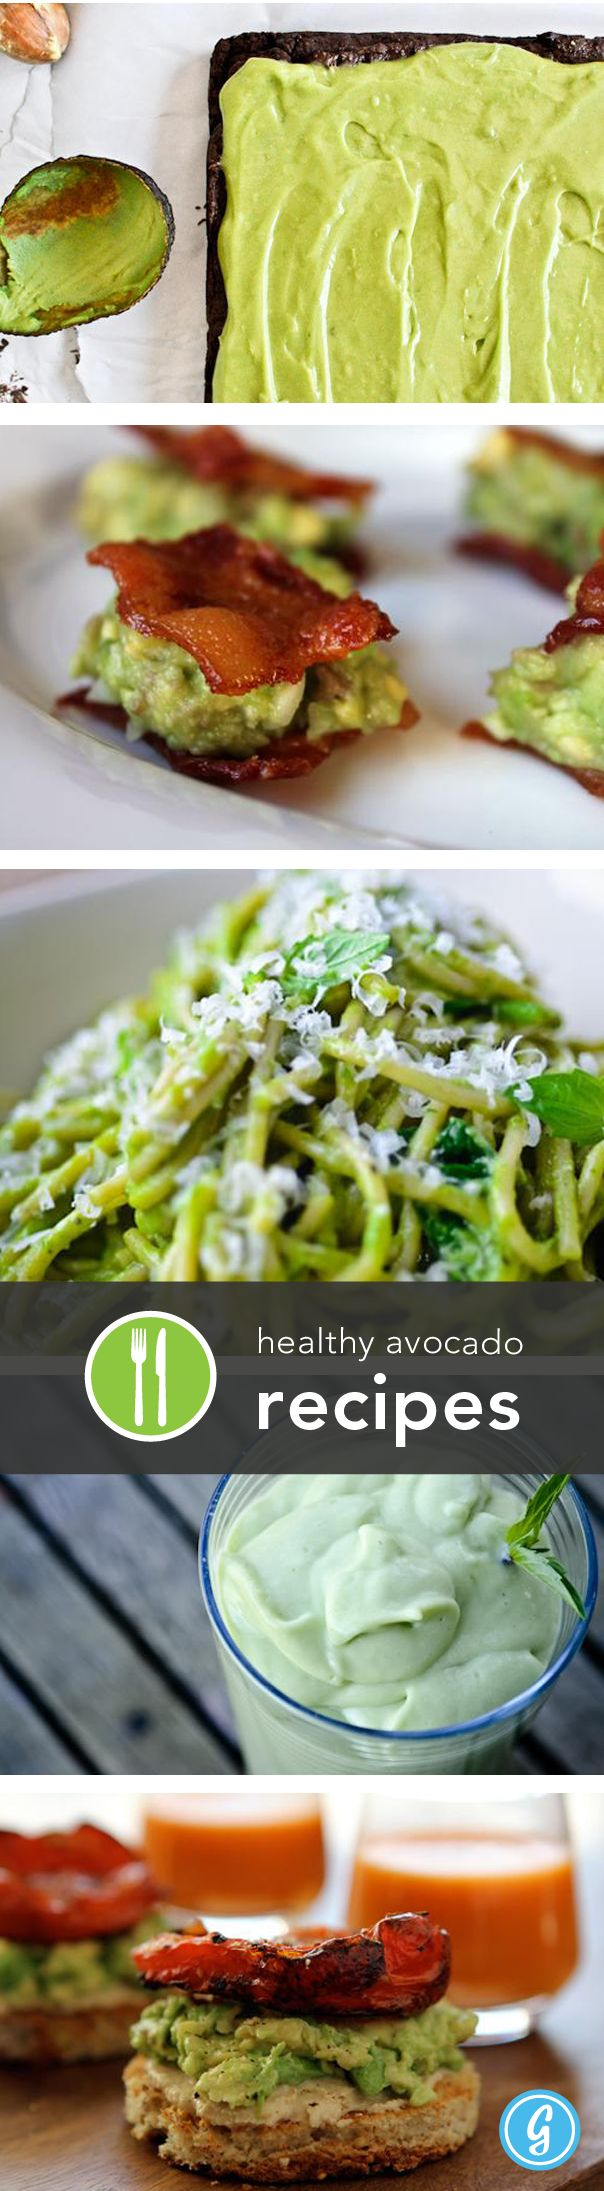 Healthy Avocados recipes